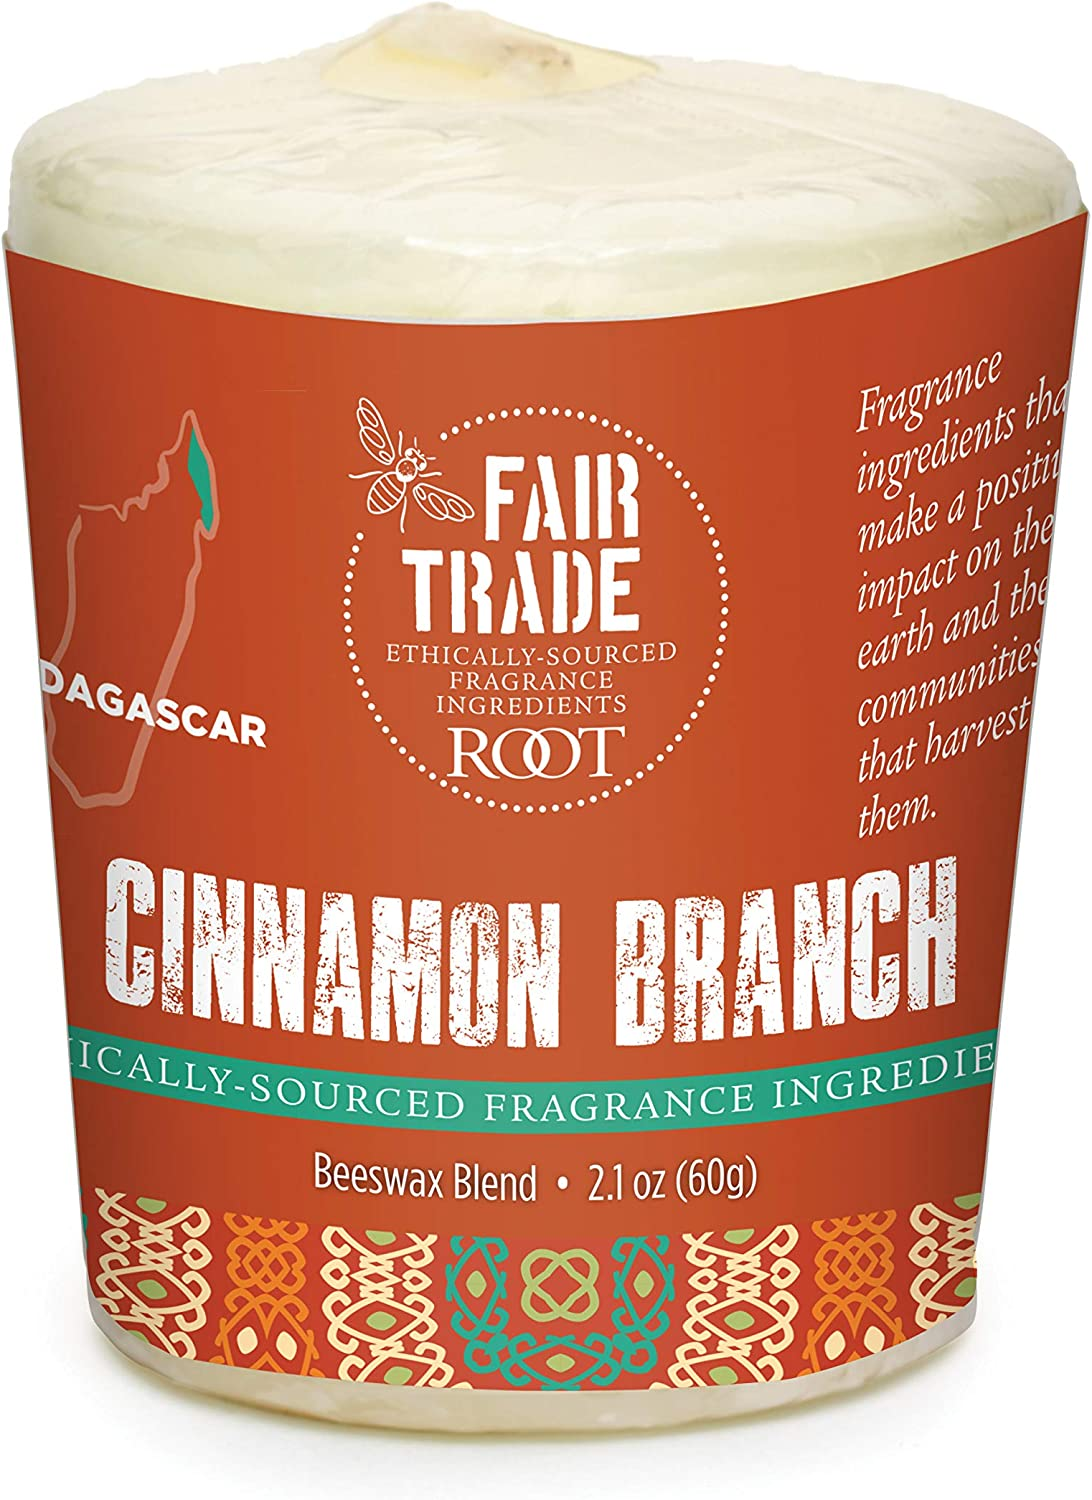 Root Candles Fair Trade Beeswax Blend 20-Hour Votive Candles, 18-Pack, Cinnamon Branch